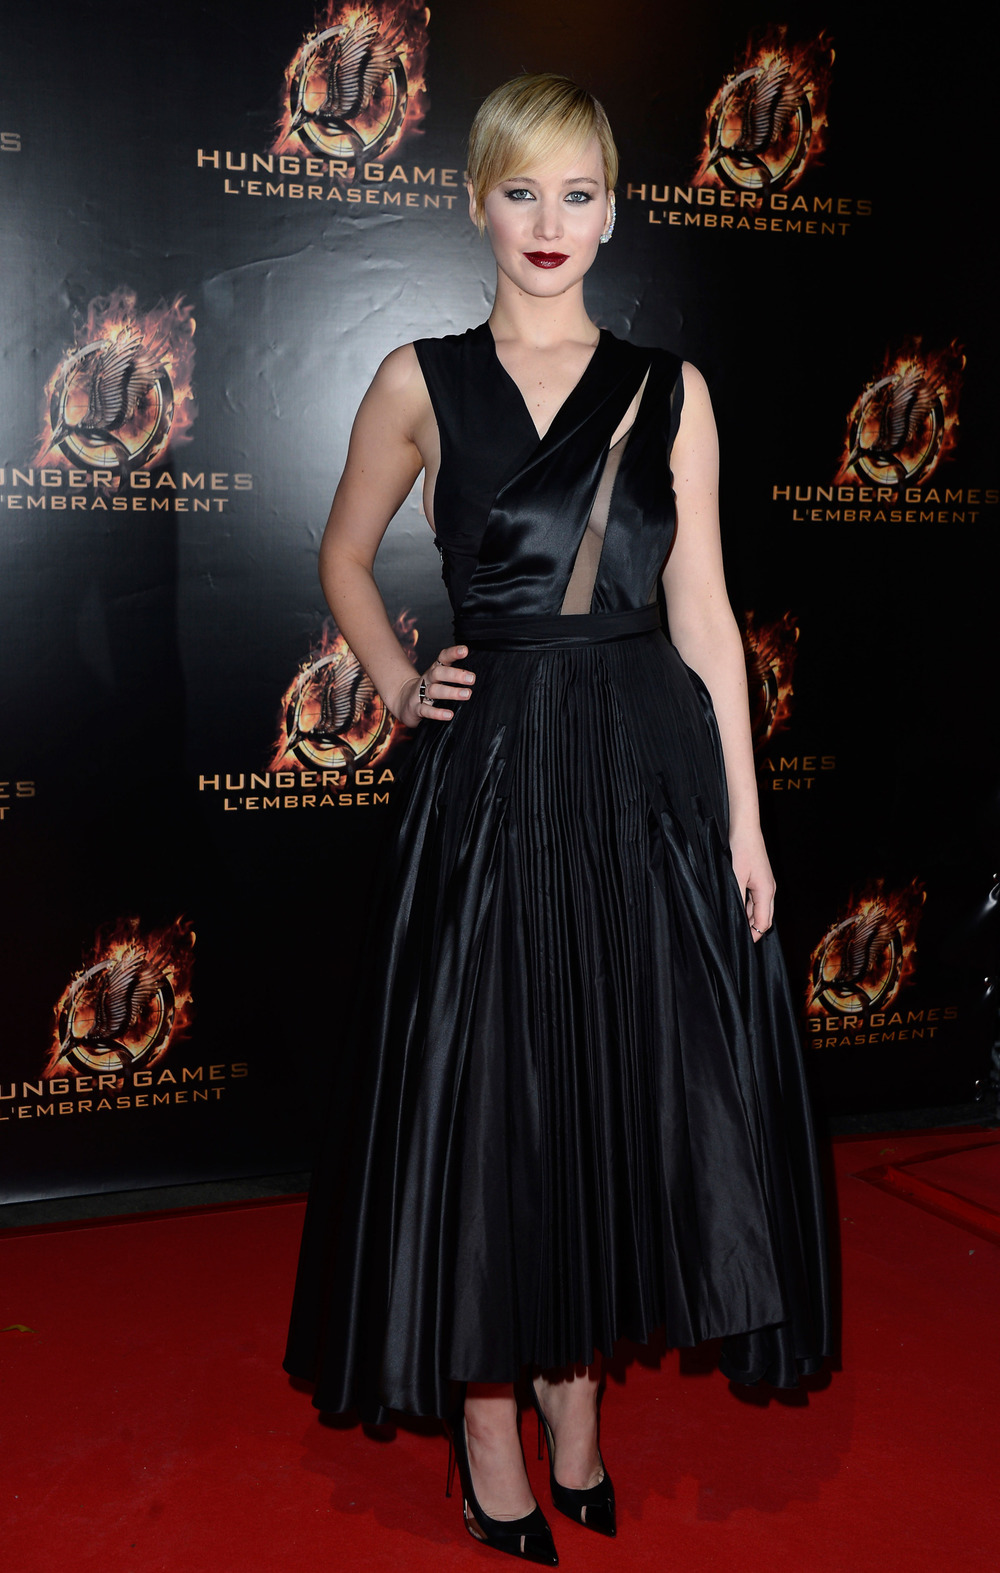 The Hunger Games: Catching Fire Paris premiere, November 2013.   Photo:Pascal Le Segretain/Getty Images